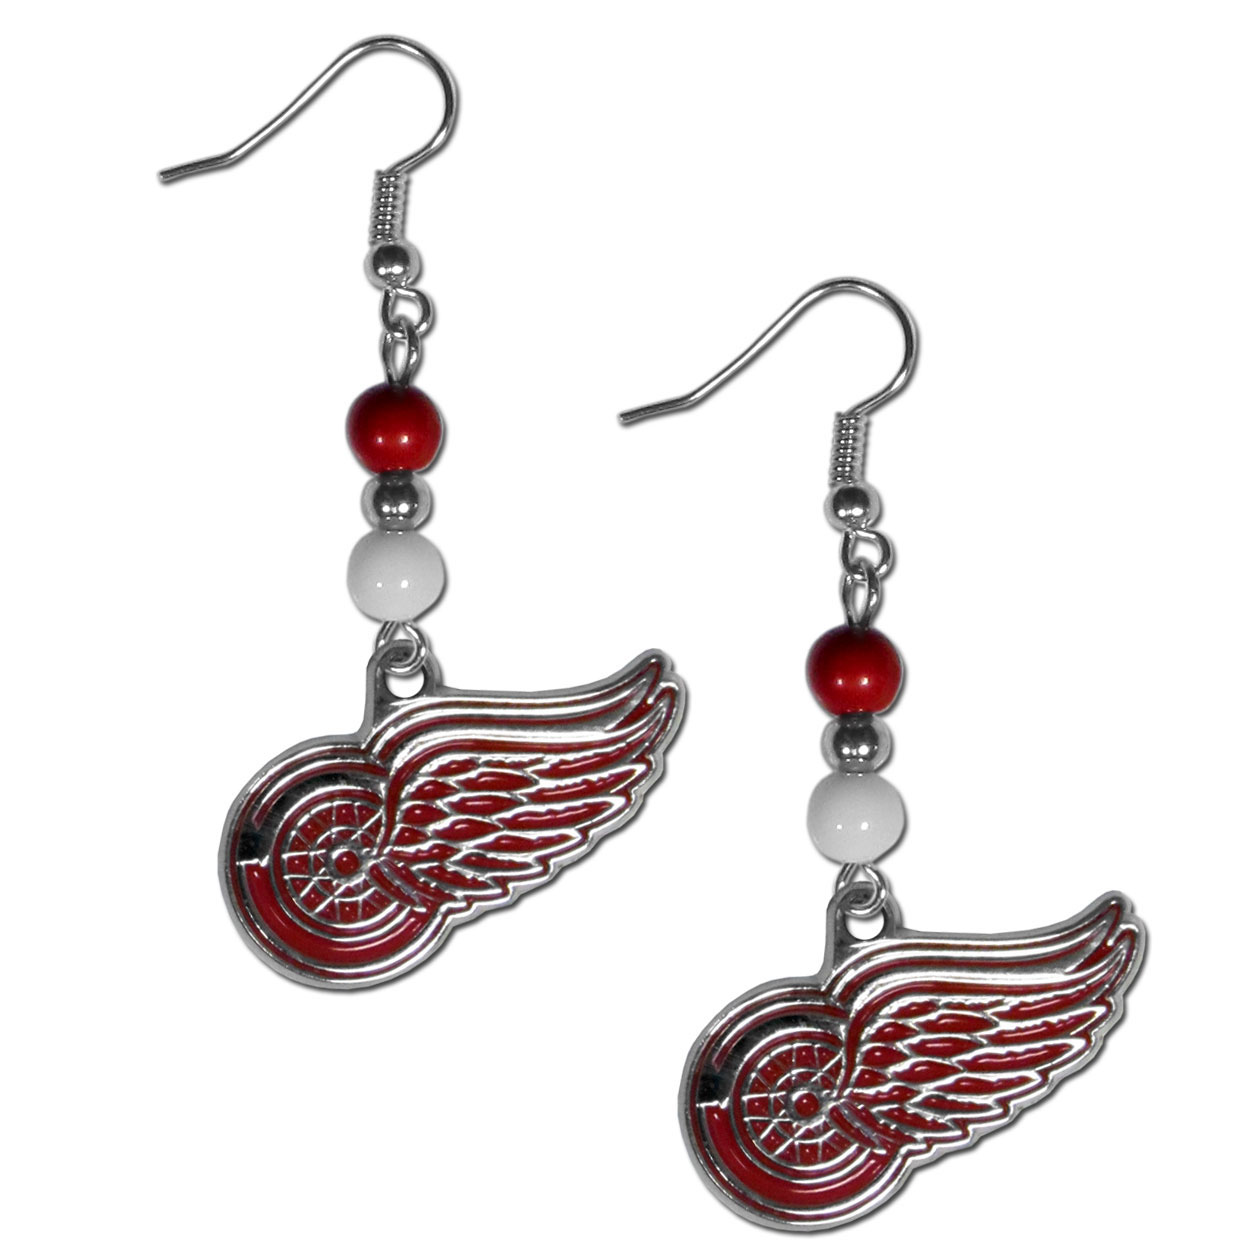 Detroit Red Wings® Fan Bead Dangle Earrings - Love your team, show it off with our Detroit Red Wings® bead dangle earrings! These super cute earrings hang approximately 2 inches and features 2 team colored beads and a high polish team charm. A must have for game day!